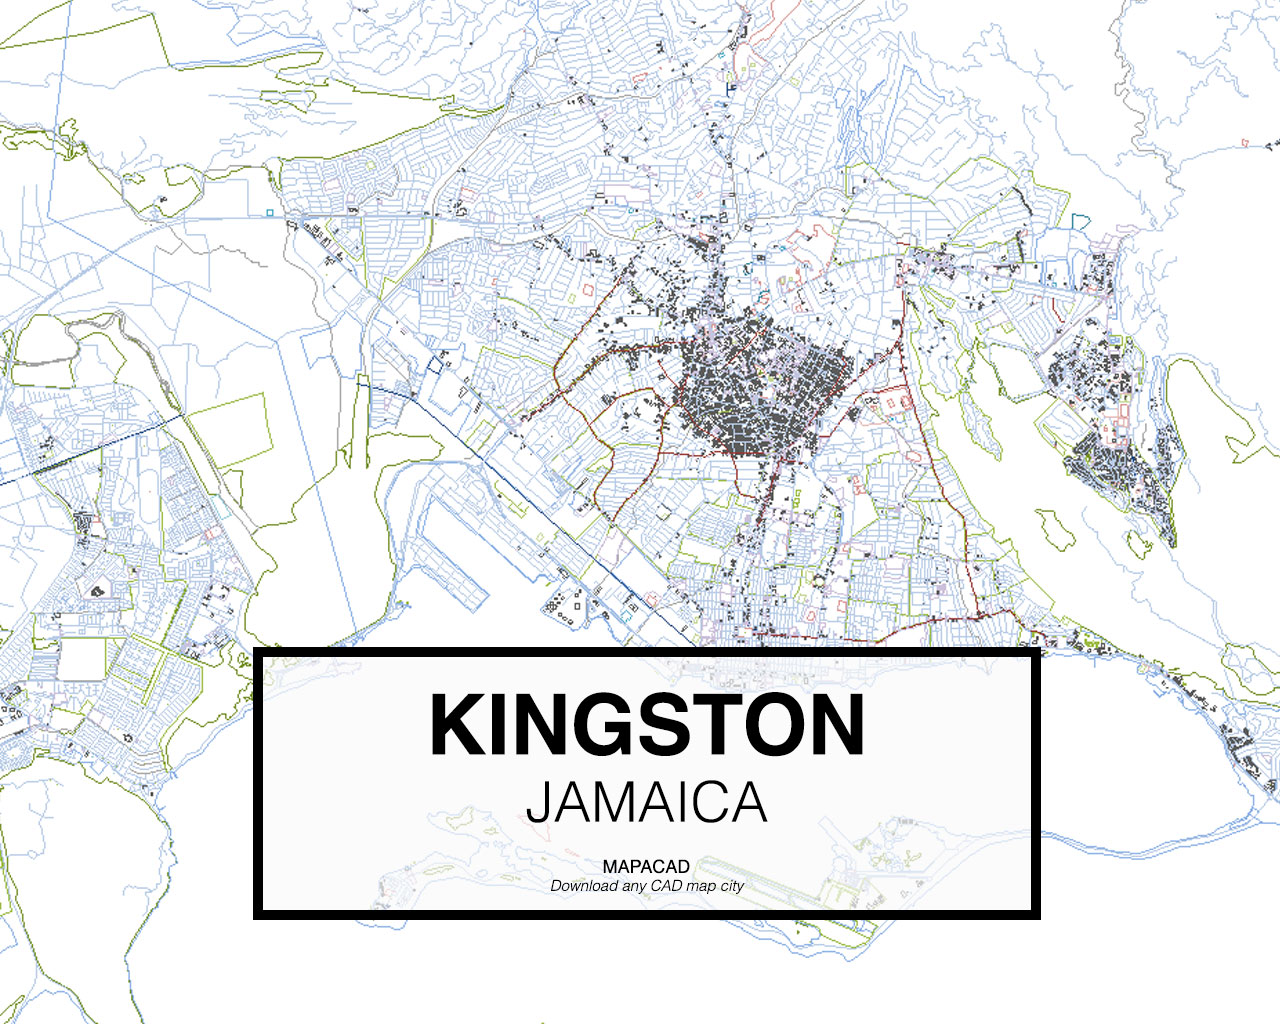 Download kingston dwg mapacad kingston jamaica 01 mapacad download map cad dwg gumiabroncs Gallery